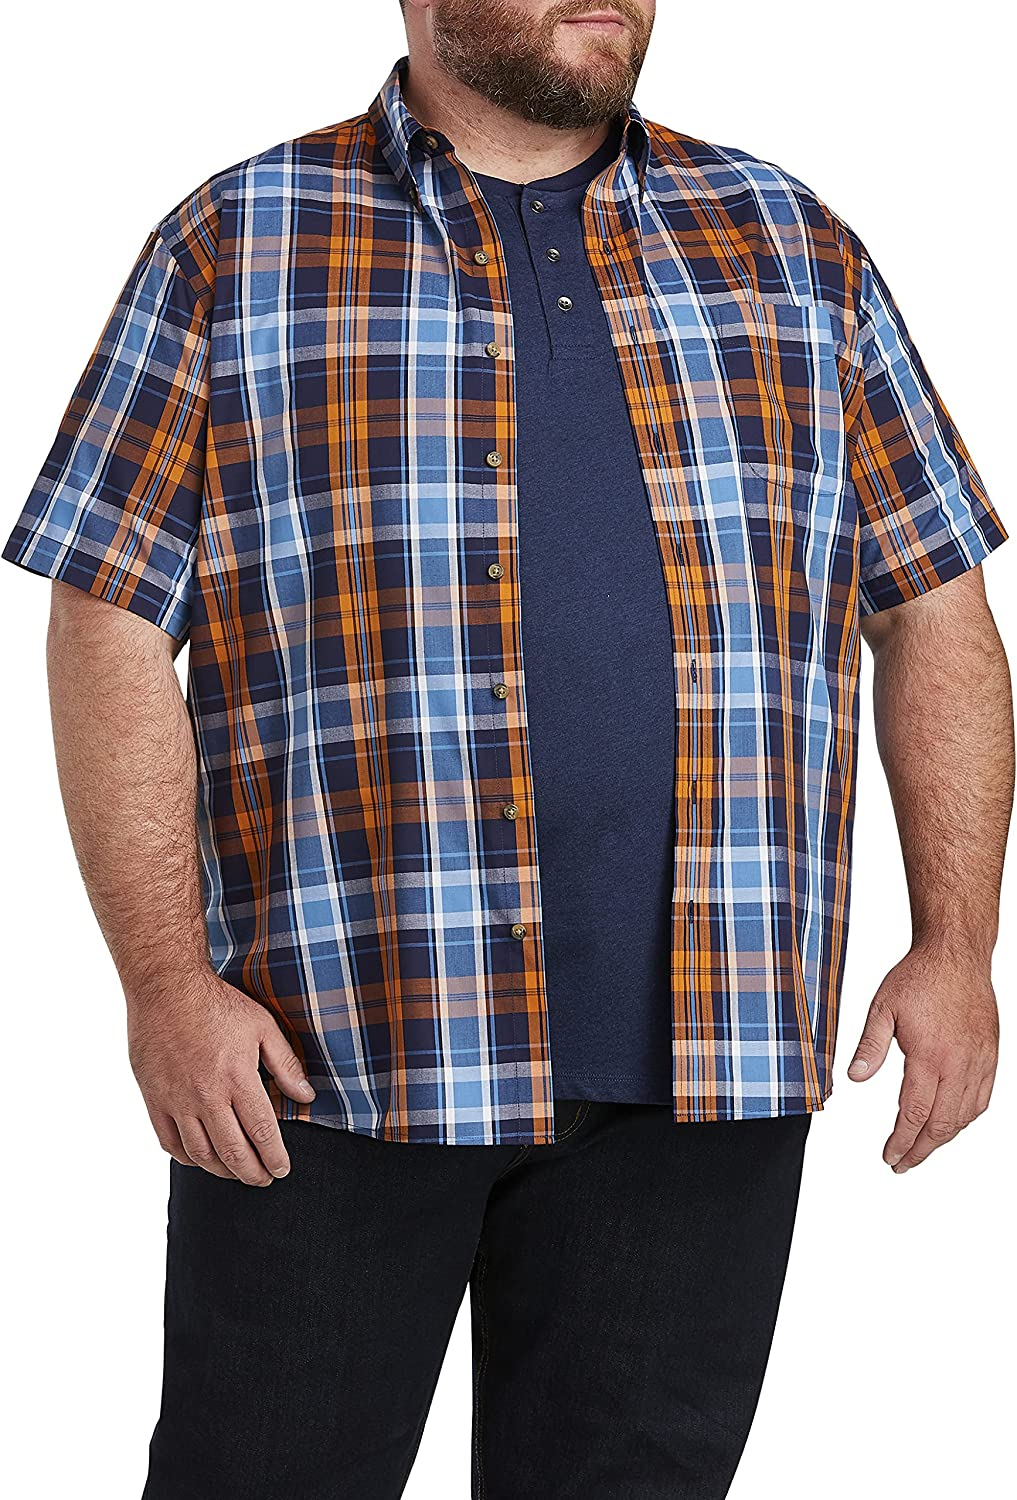 Harbor Bay by DXL Big and Tall Easy-Care Large Plaid Sport Shirt, Blue/Orange